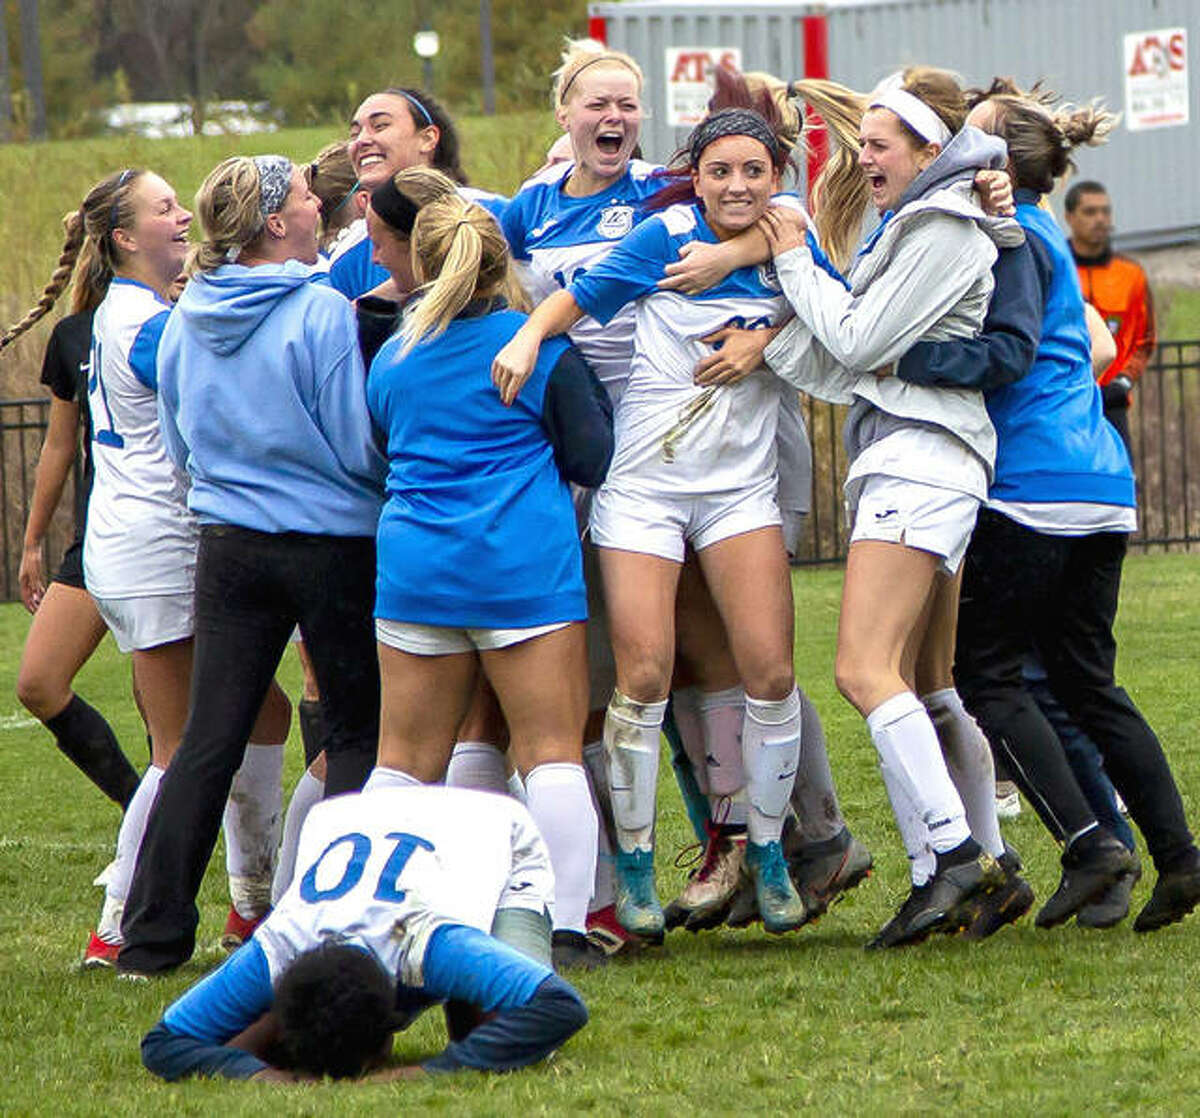 Members of the Lewis and Clark women's soccer team celebrate a playoff victory over rival Southwestern Illinois College last October in Godfrey. SWIC's soccer teams will move to NJCAA Division II when play resumes in the spring, meaning the end, for now, of the intense postseason rivalry with LCCC.